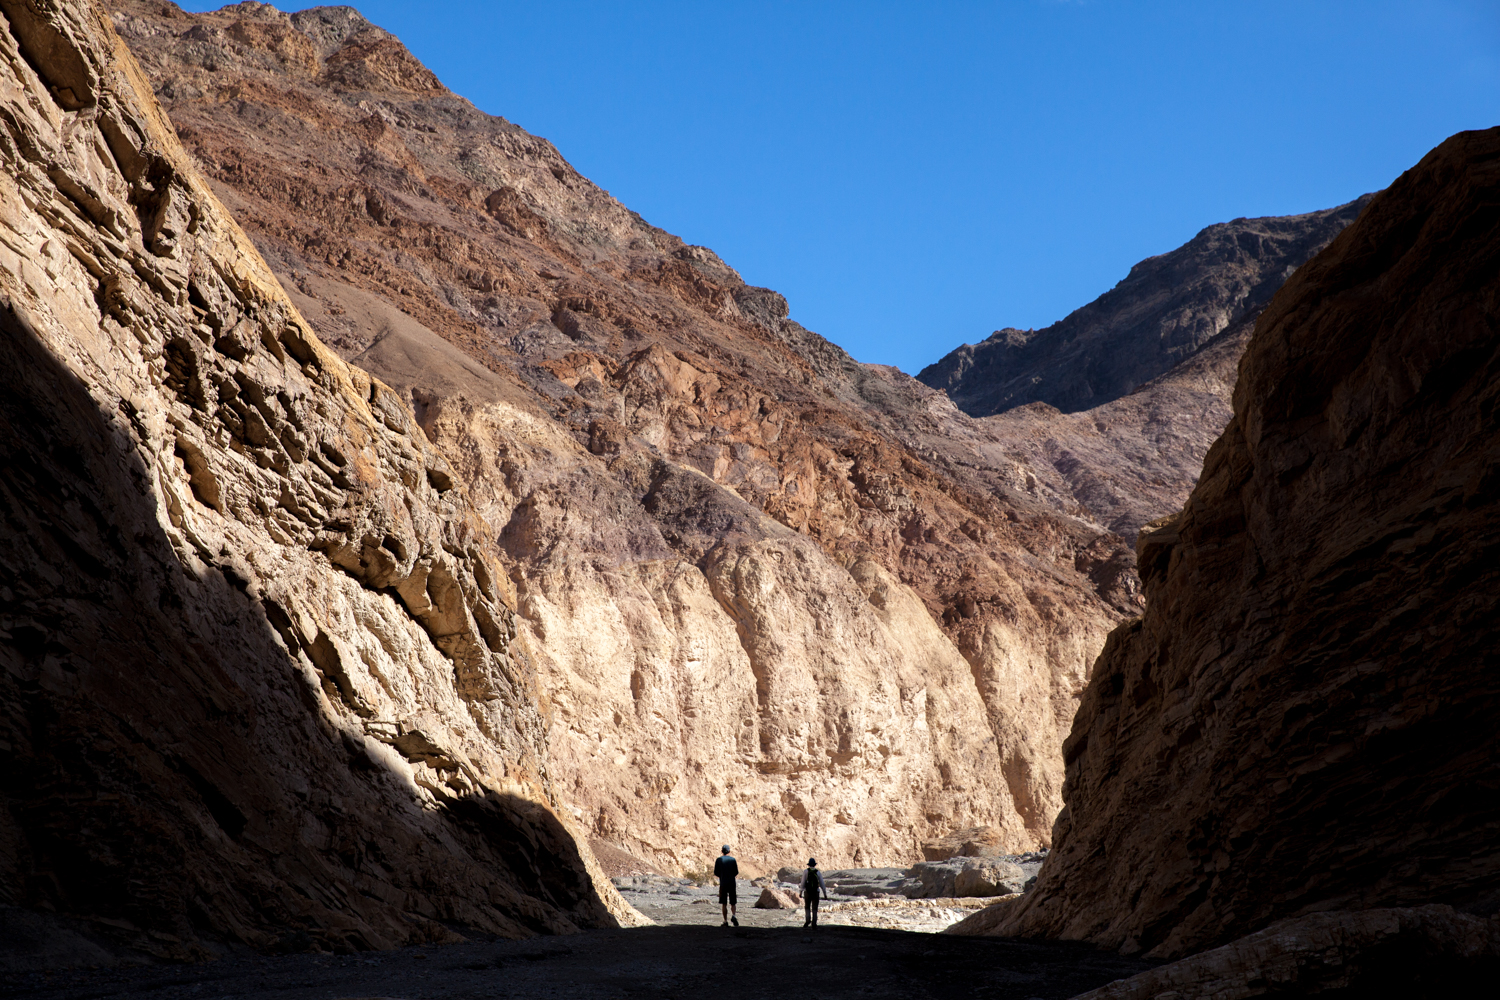 Helynn_Ospina_Travel_Death_Valley_California_01630-26.jpg